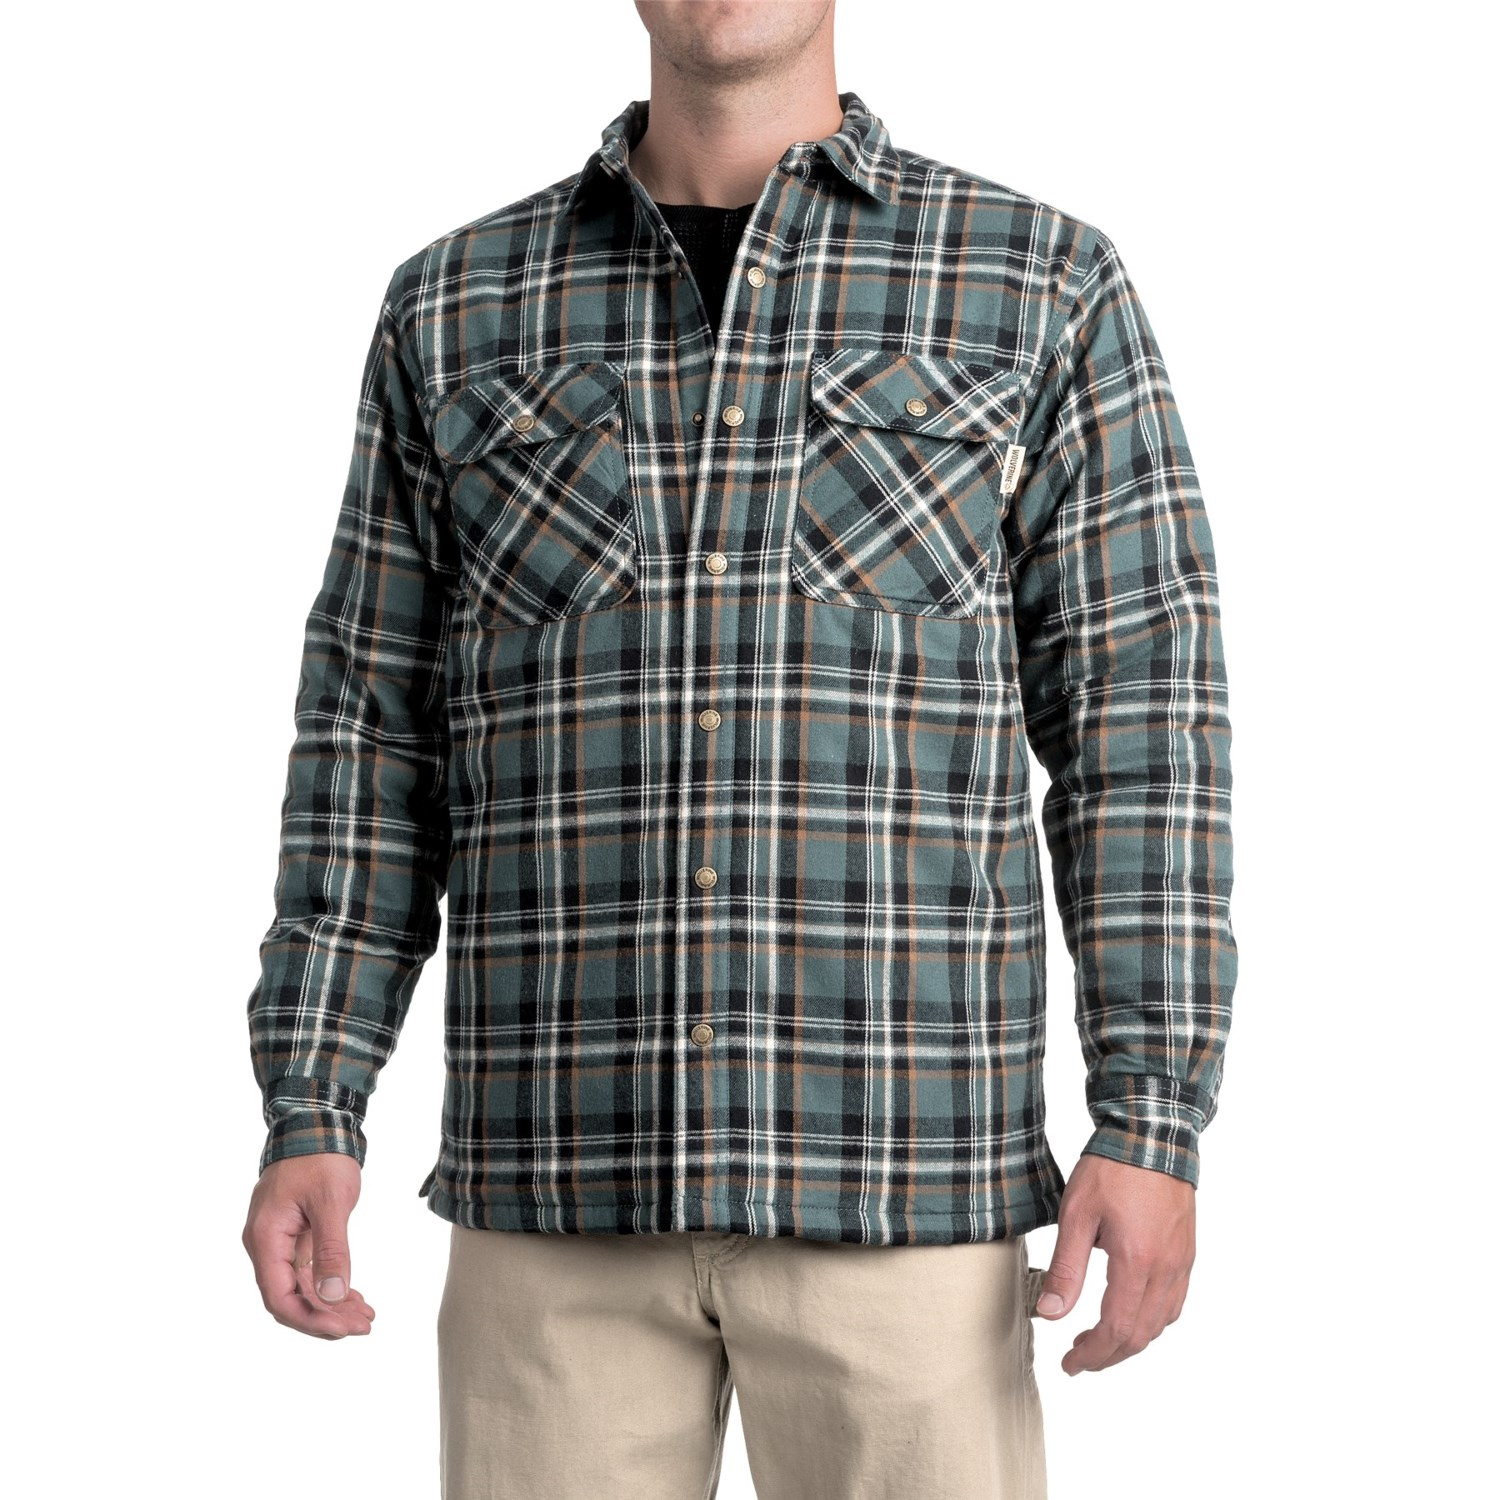 Wolverine Forester Lined Cotton Shirt Jacket (For Men) - Save 50%